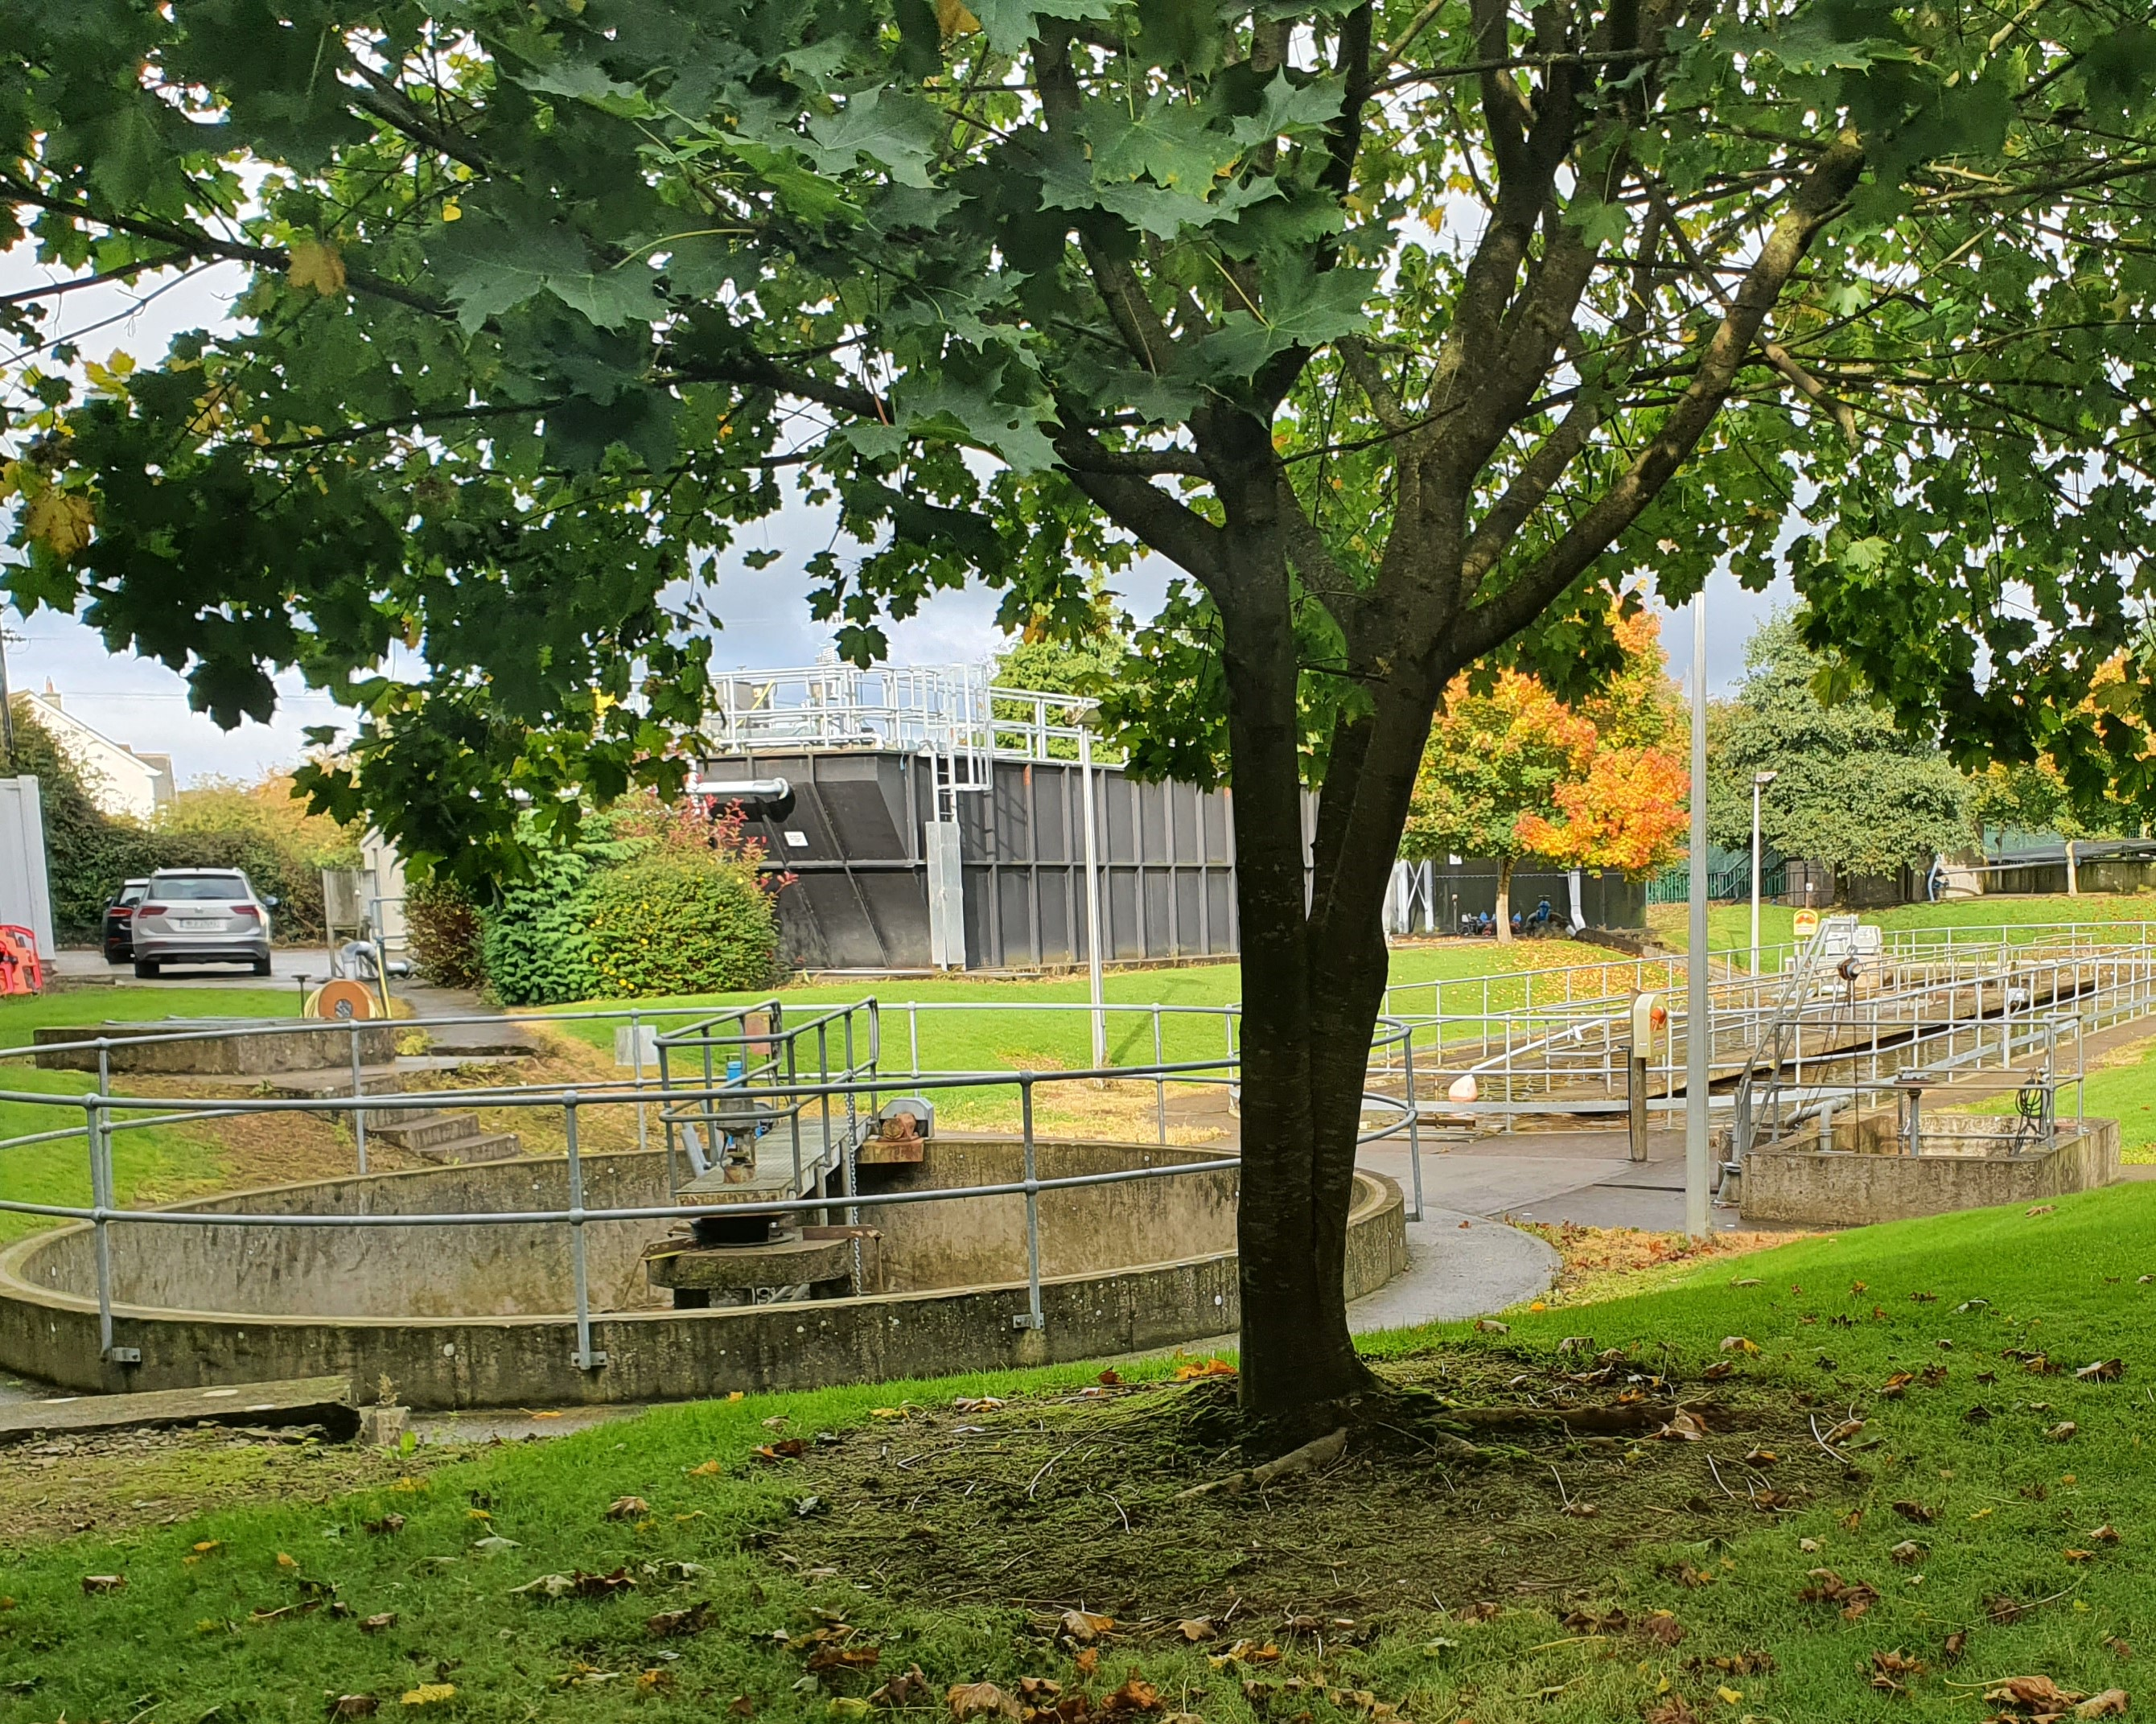 A waste water treatment plant with a tree in the foreground